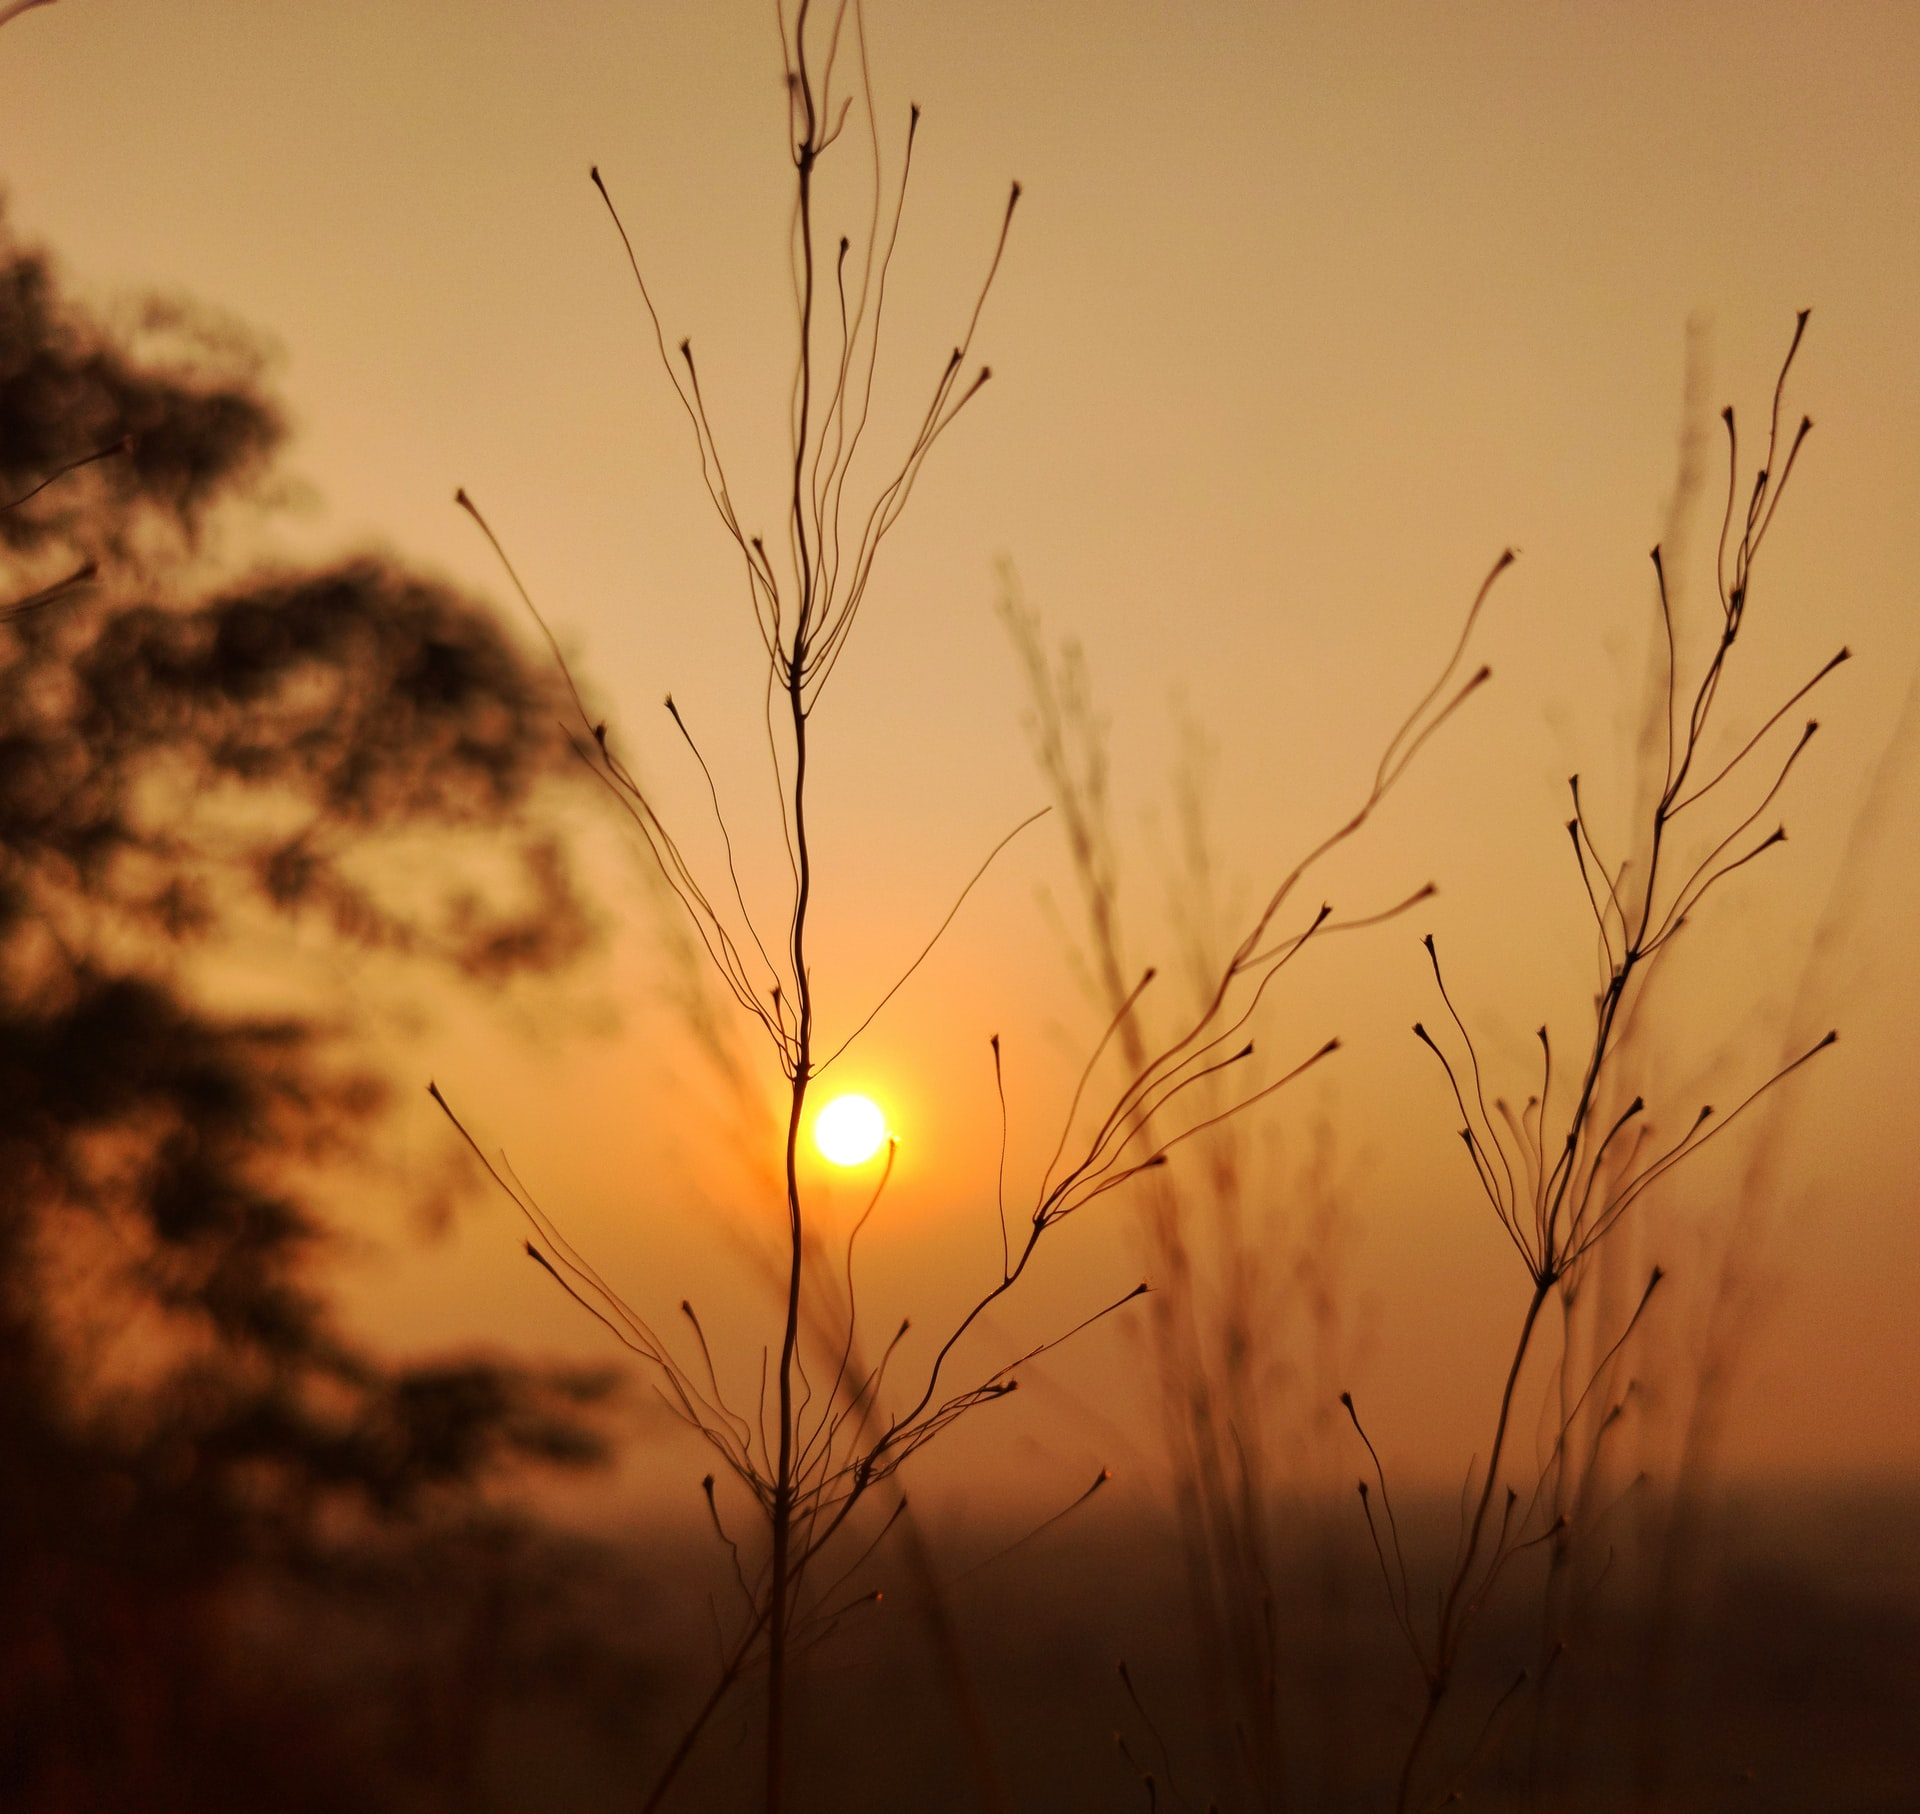 Grass silhouetted against sunset. Photo by FAISAL AHMAD on Unsplash.